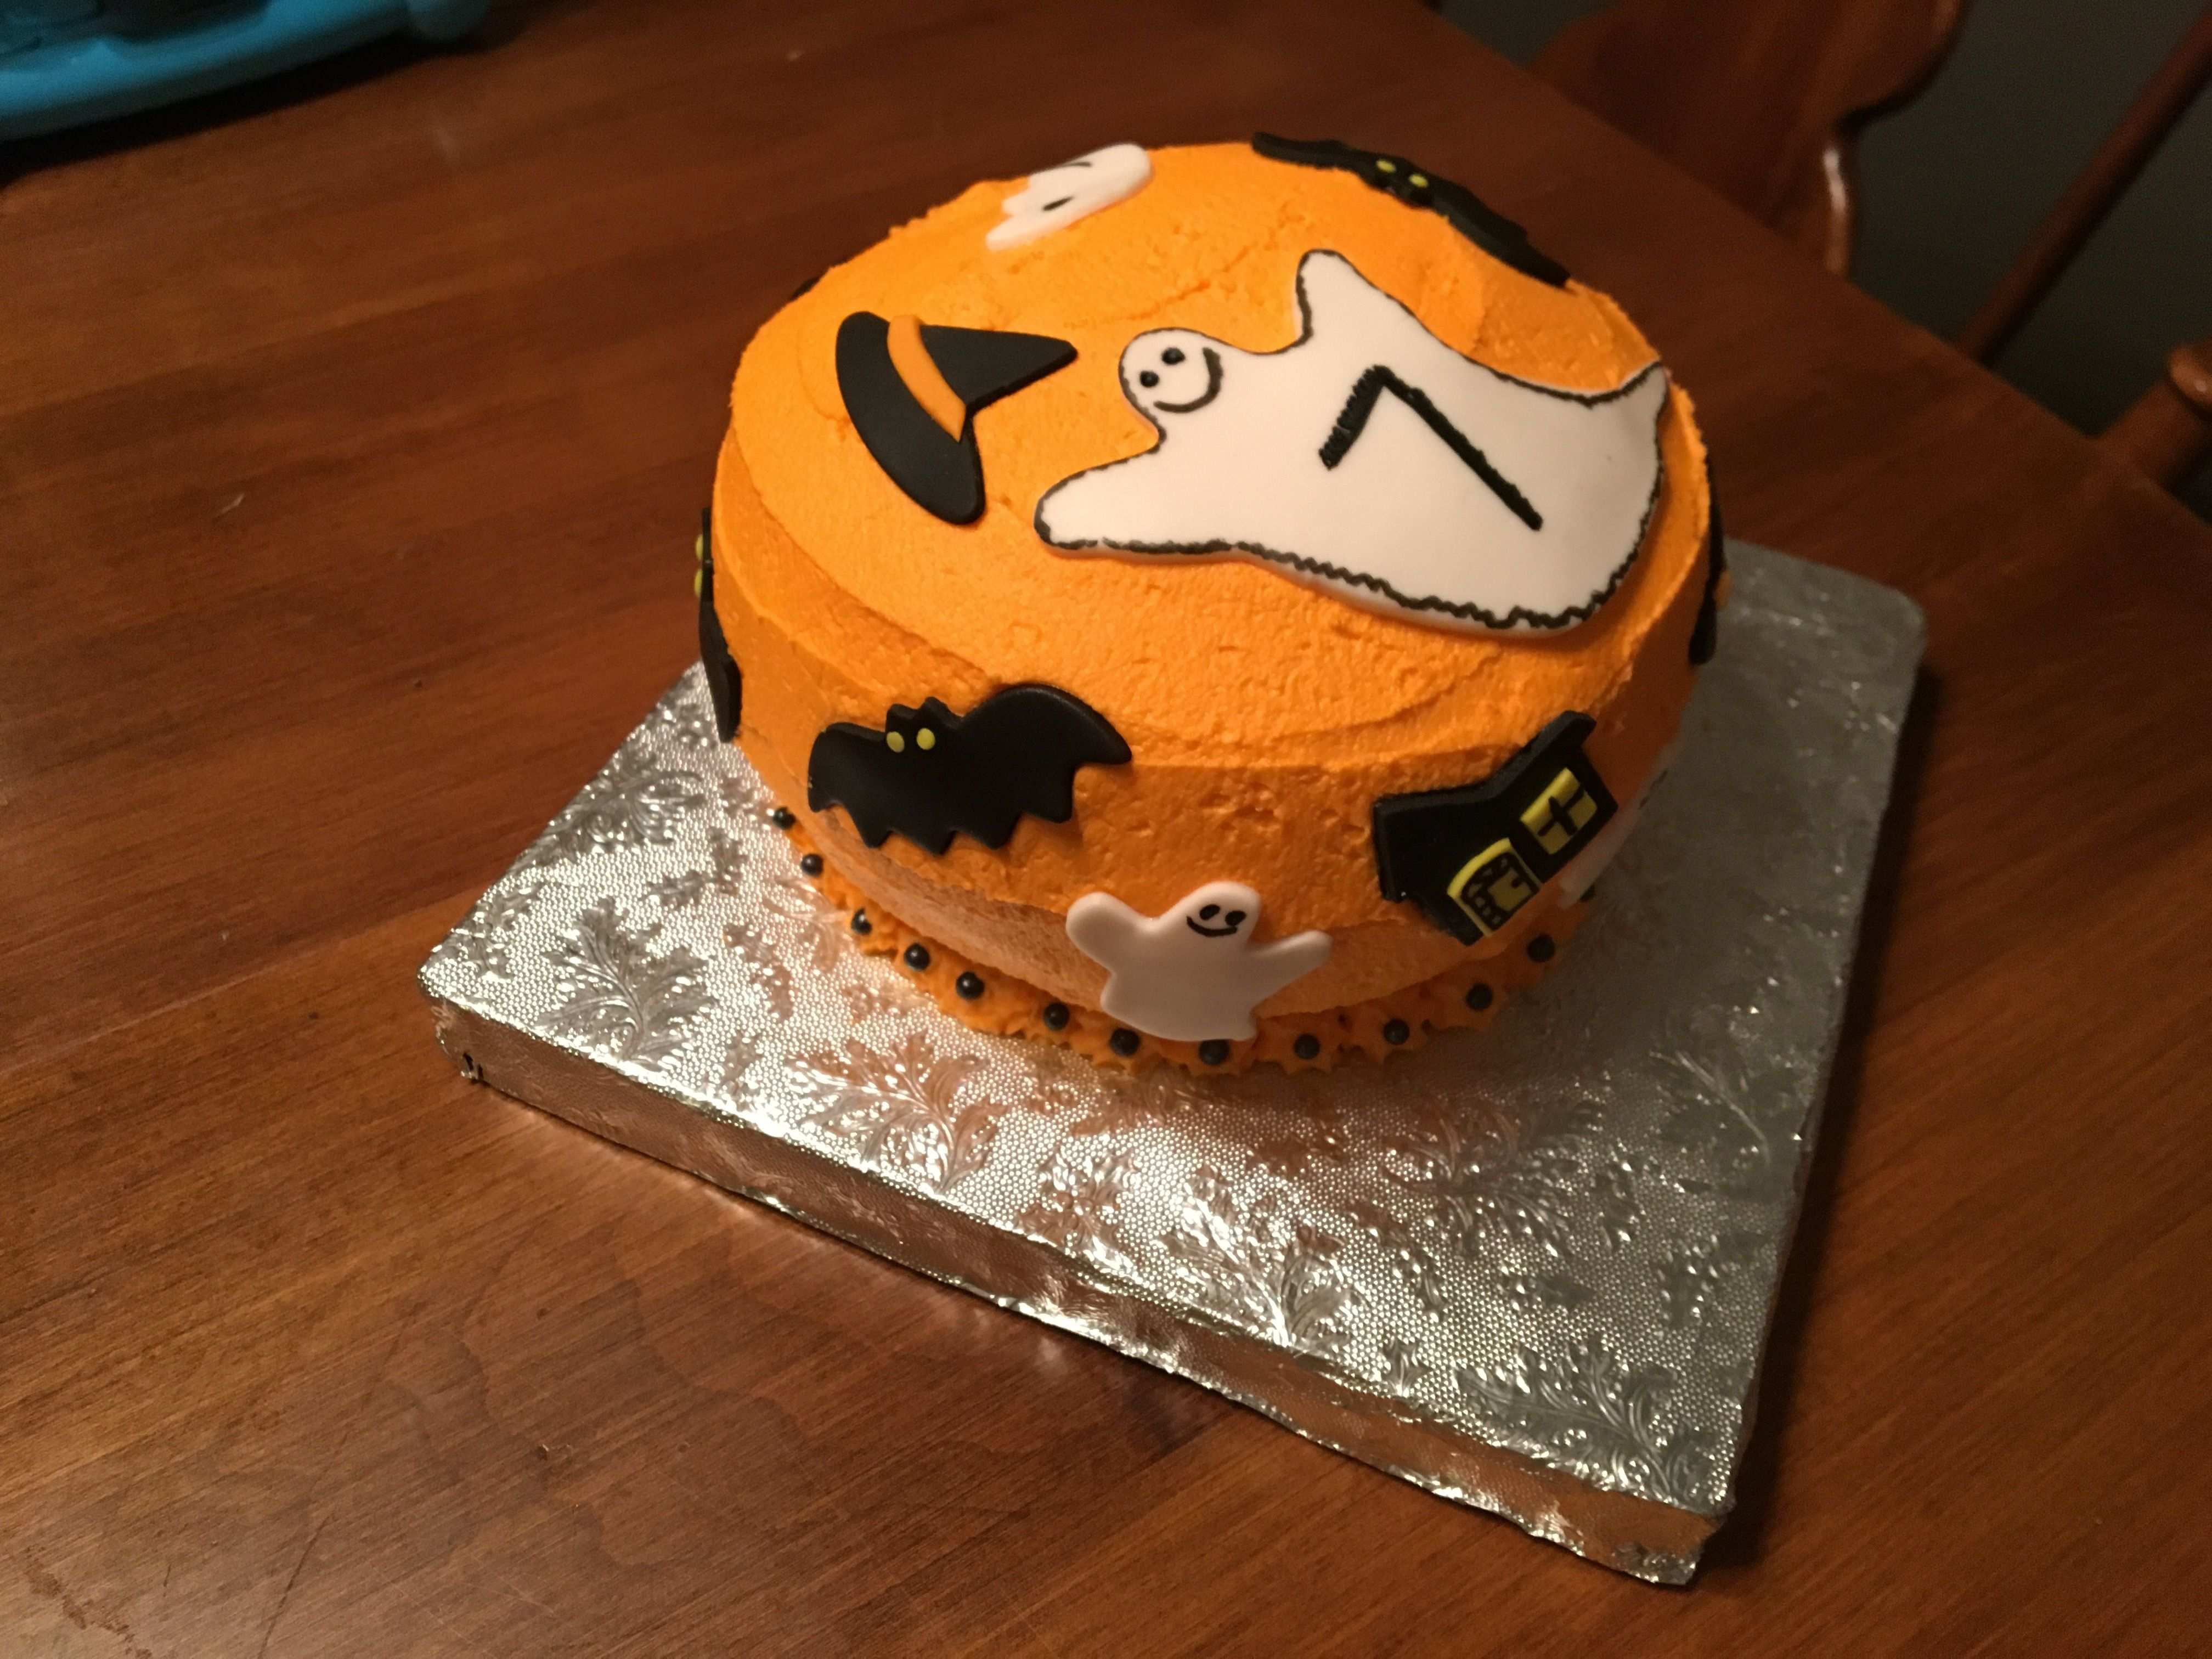 Halloween Cake Its a 6 cake 3 high Filled with strawberry